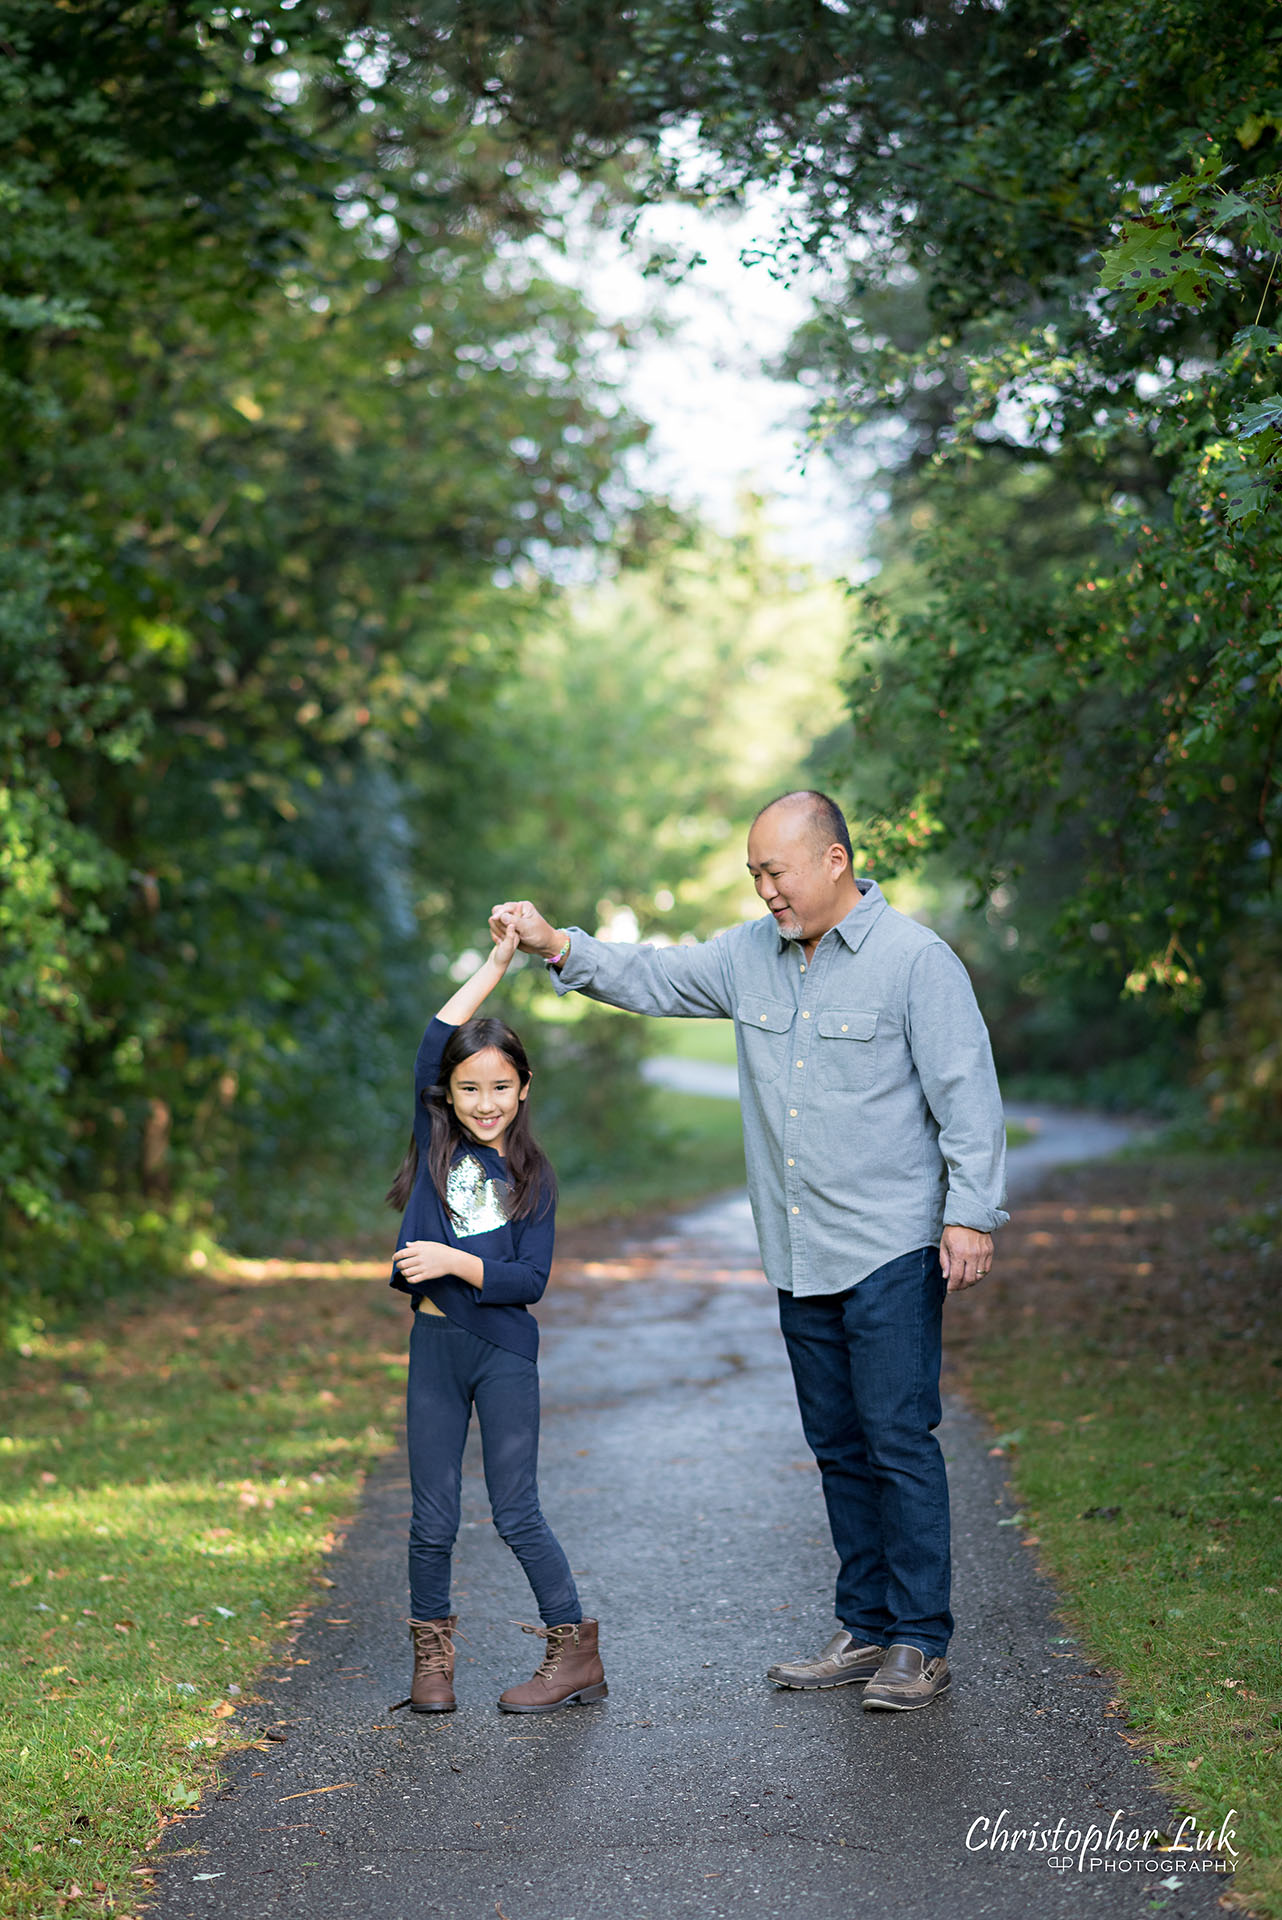 Christopher Luk Family Photographer Toronto Markham Candid Natural Photojournalistic Father Daughter Dancing Twirl Spinning